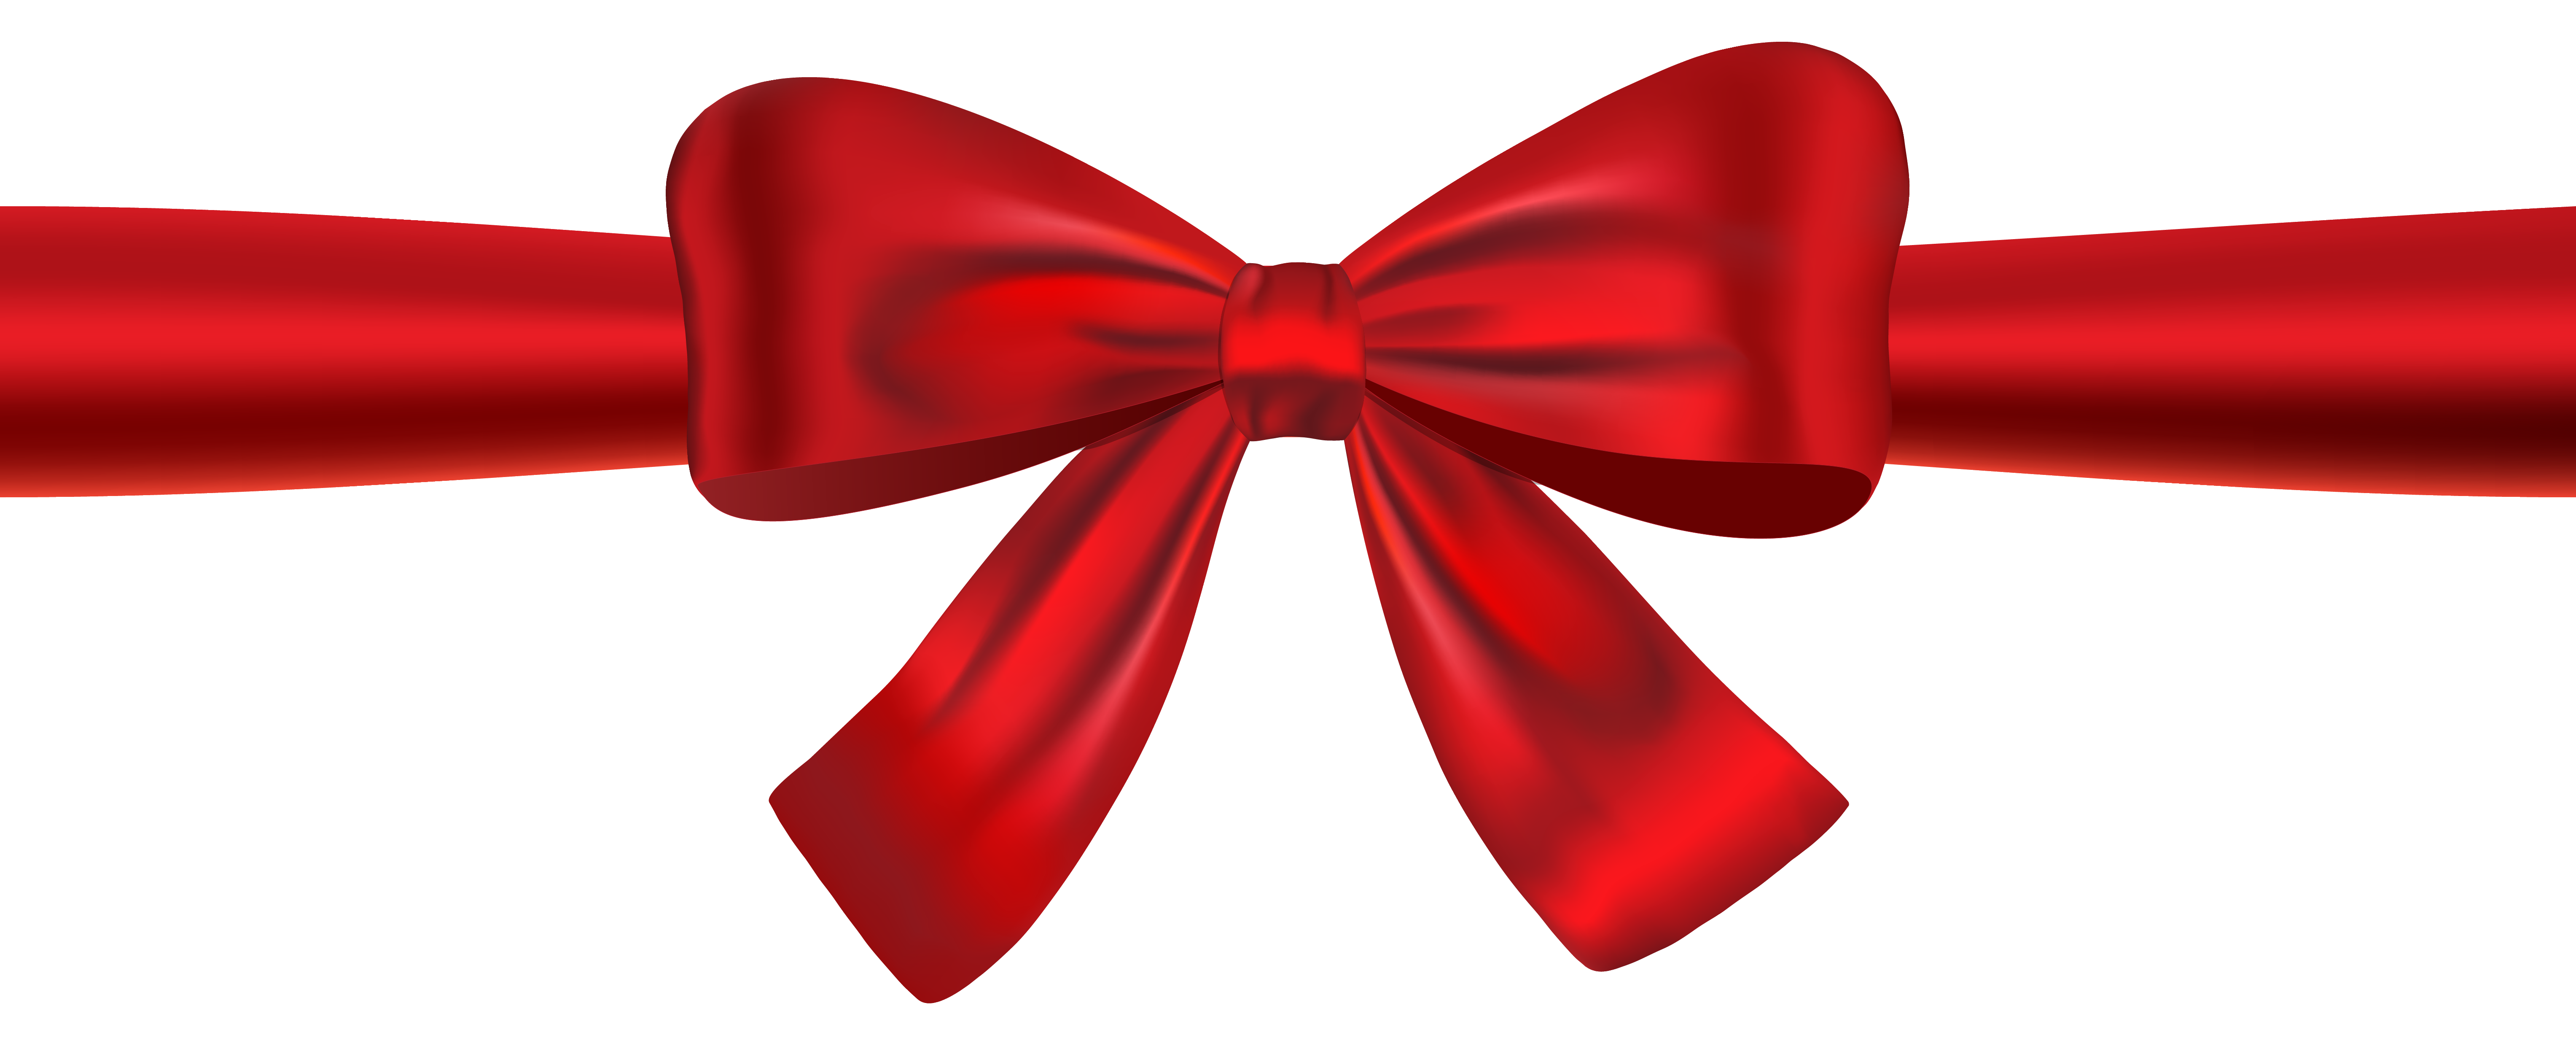 Bow Png Hd PNG Image - Bow HD PNG